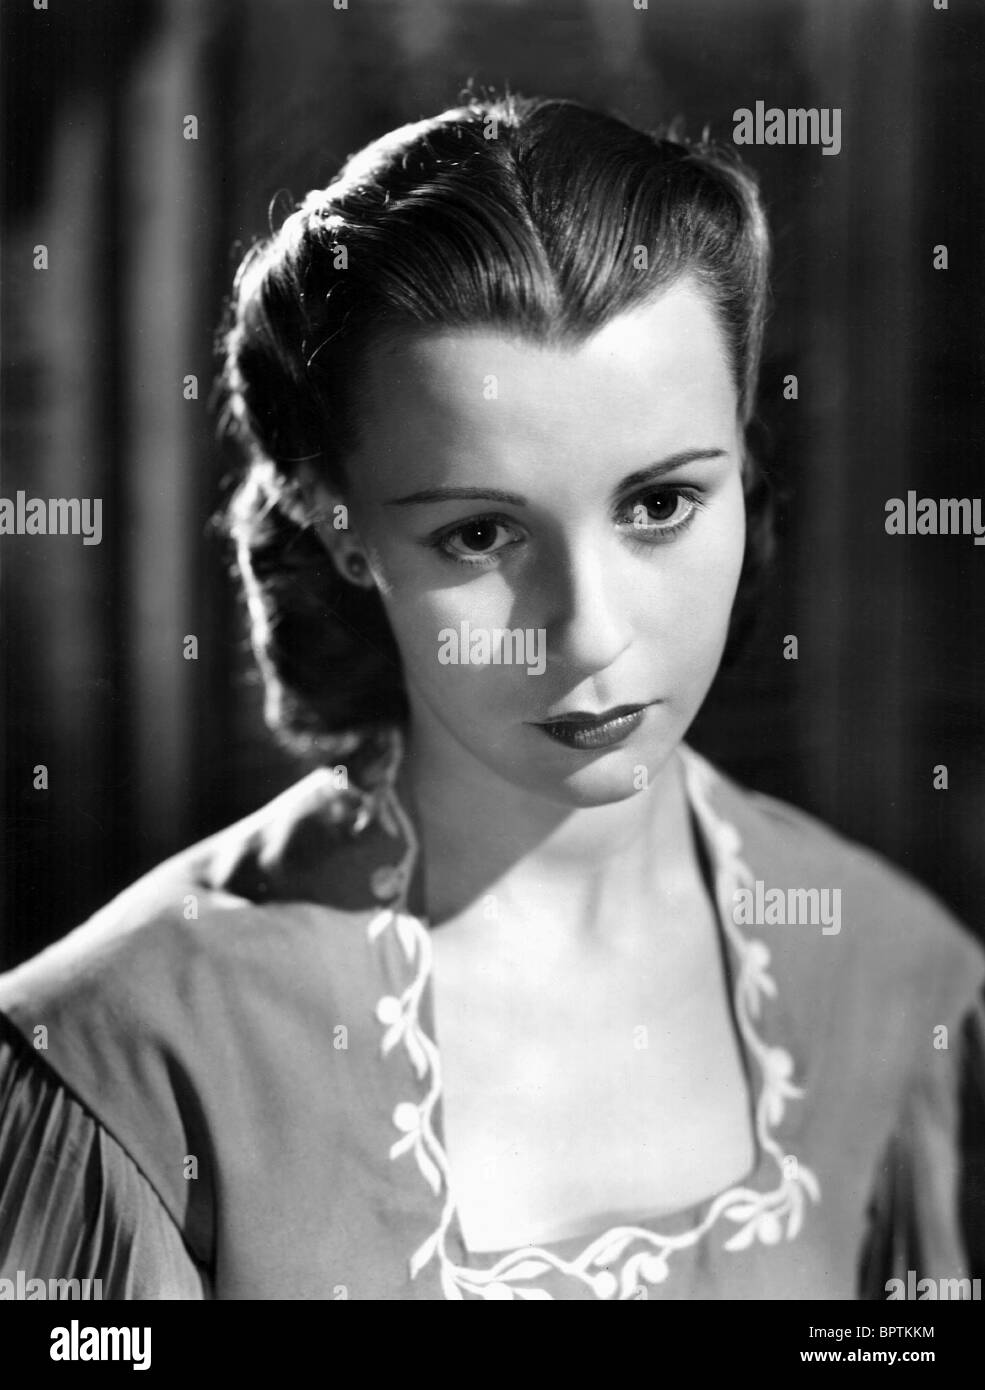 Claire Bloom (born 1931) nudes (79 foto and video), Topless, Paparazzi, Feet, underwear 2017